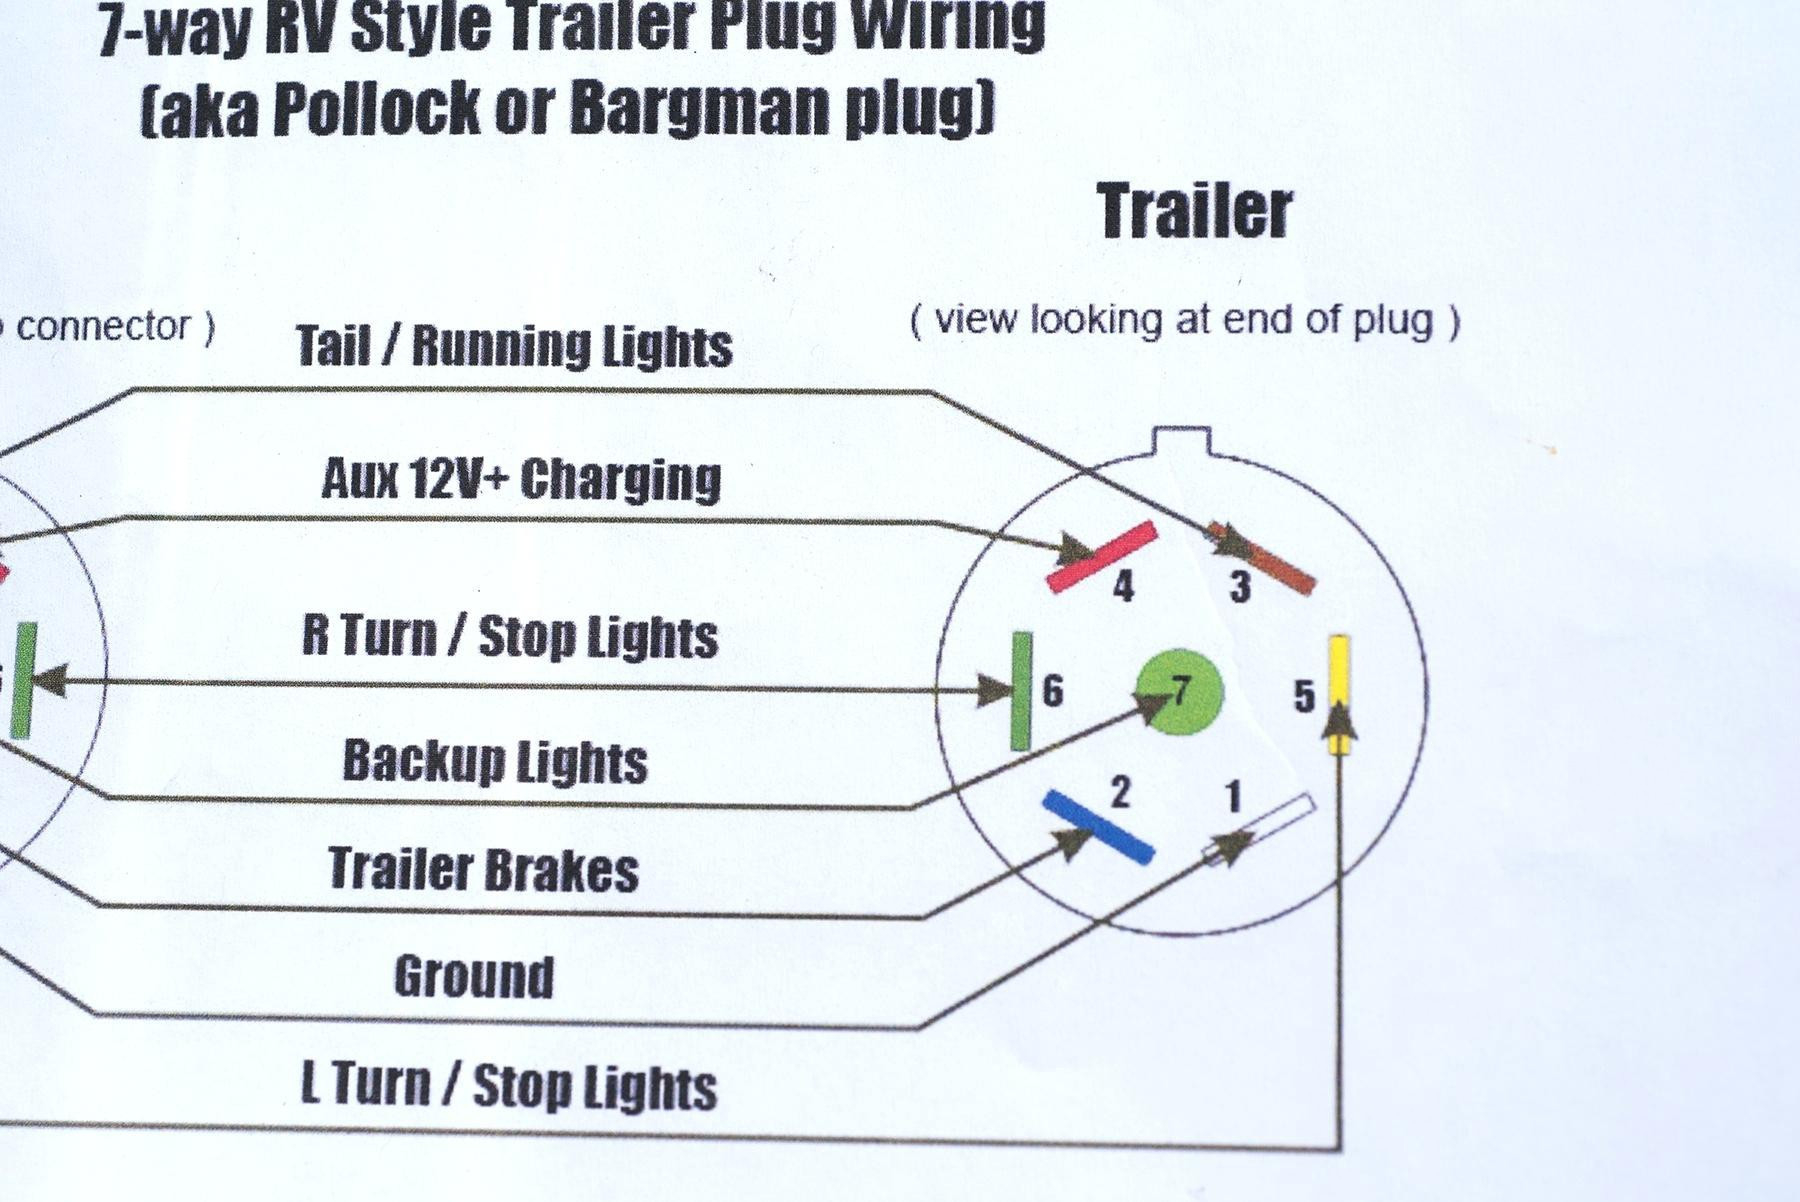 Gooseneck Trailer Wiring Diagram Free Downloads Gooseneck Trailer - Pj Trailer Wiring Diagram